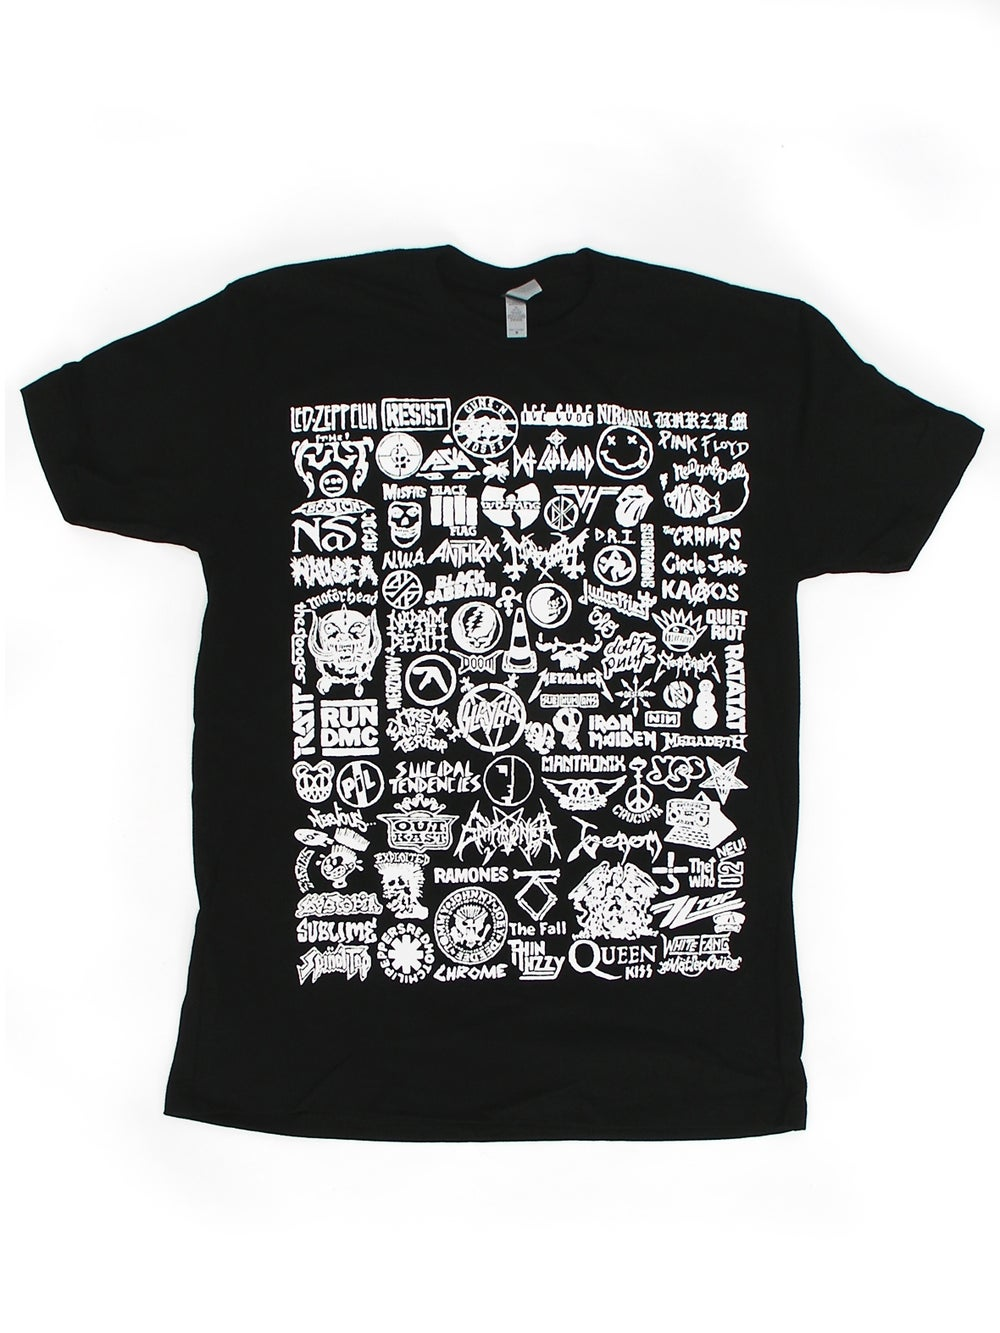 Bands T-shirt